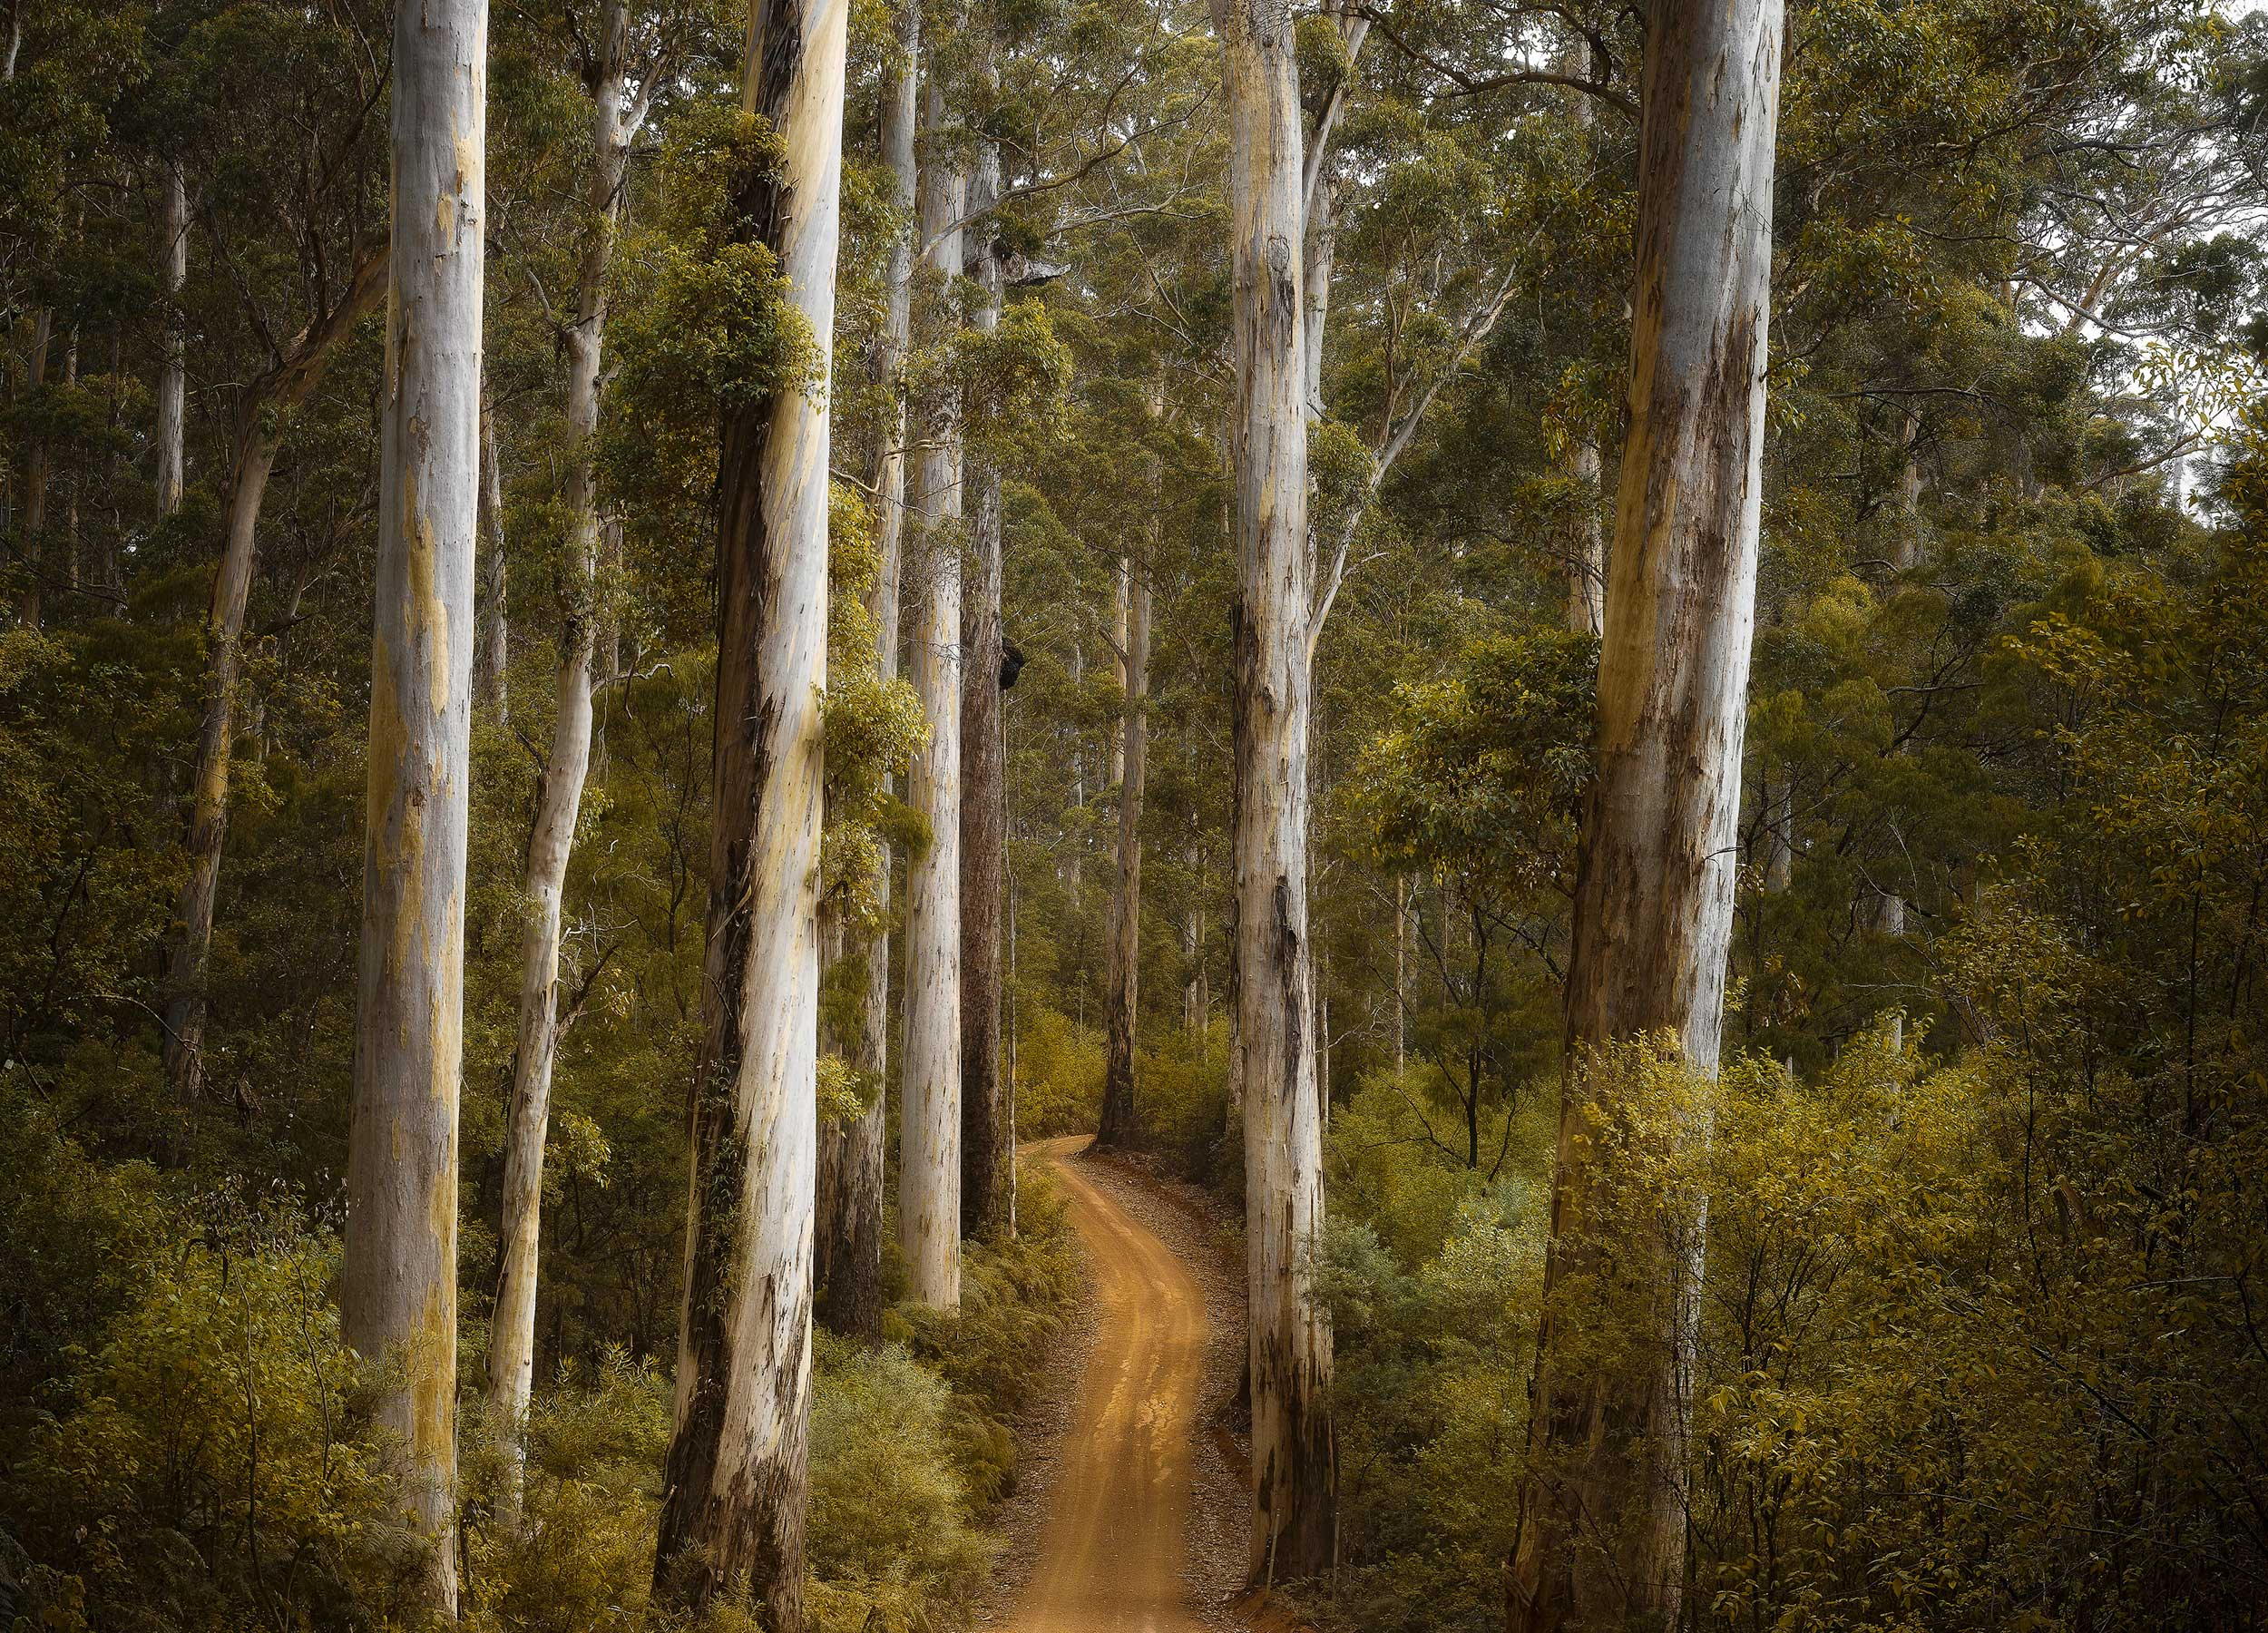 A track among the trees at Meelup beach in Geographe Bay